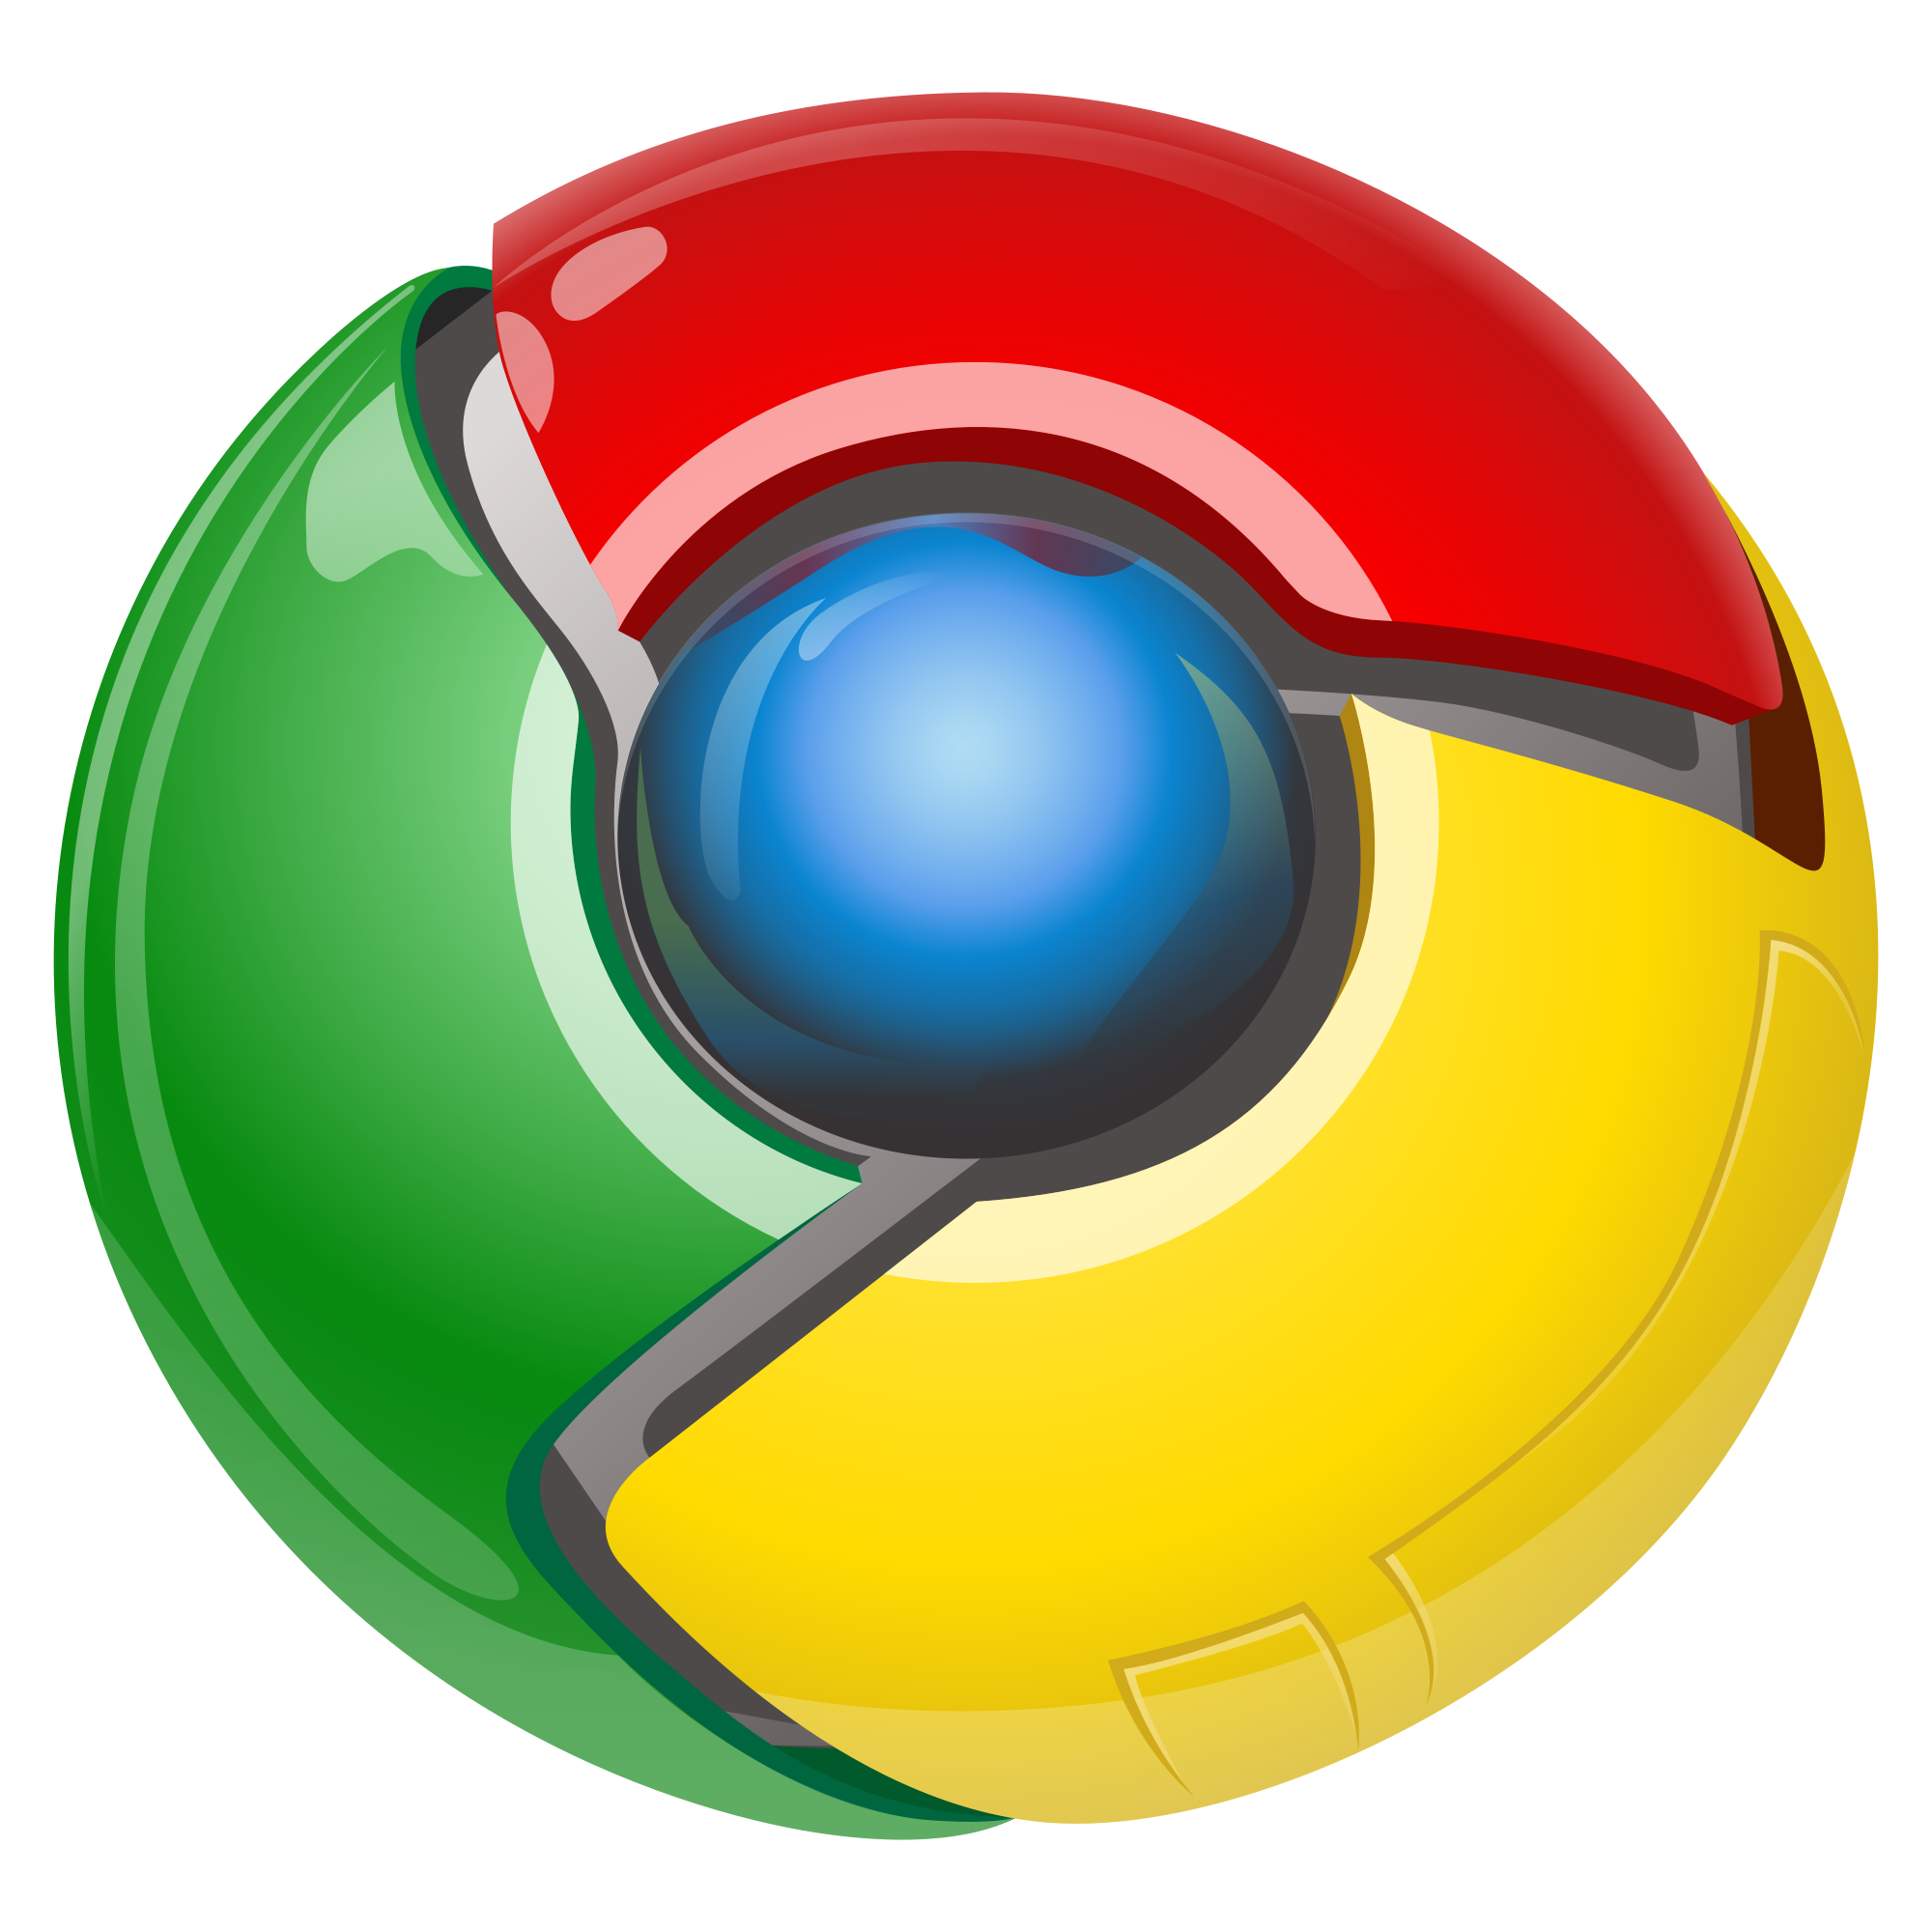 clipart free stock Google clipart cool. Chrome logo png images